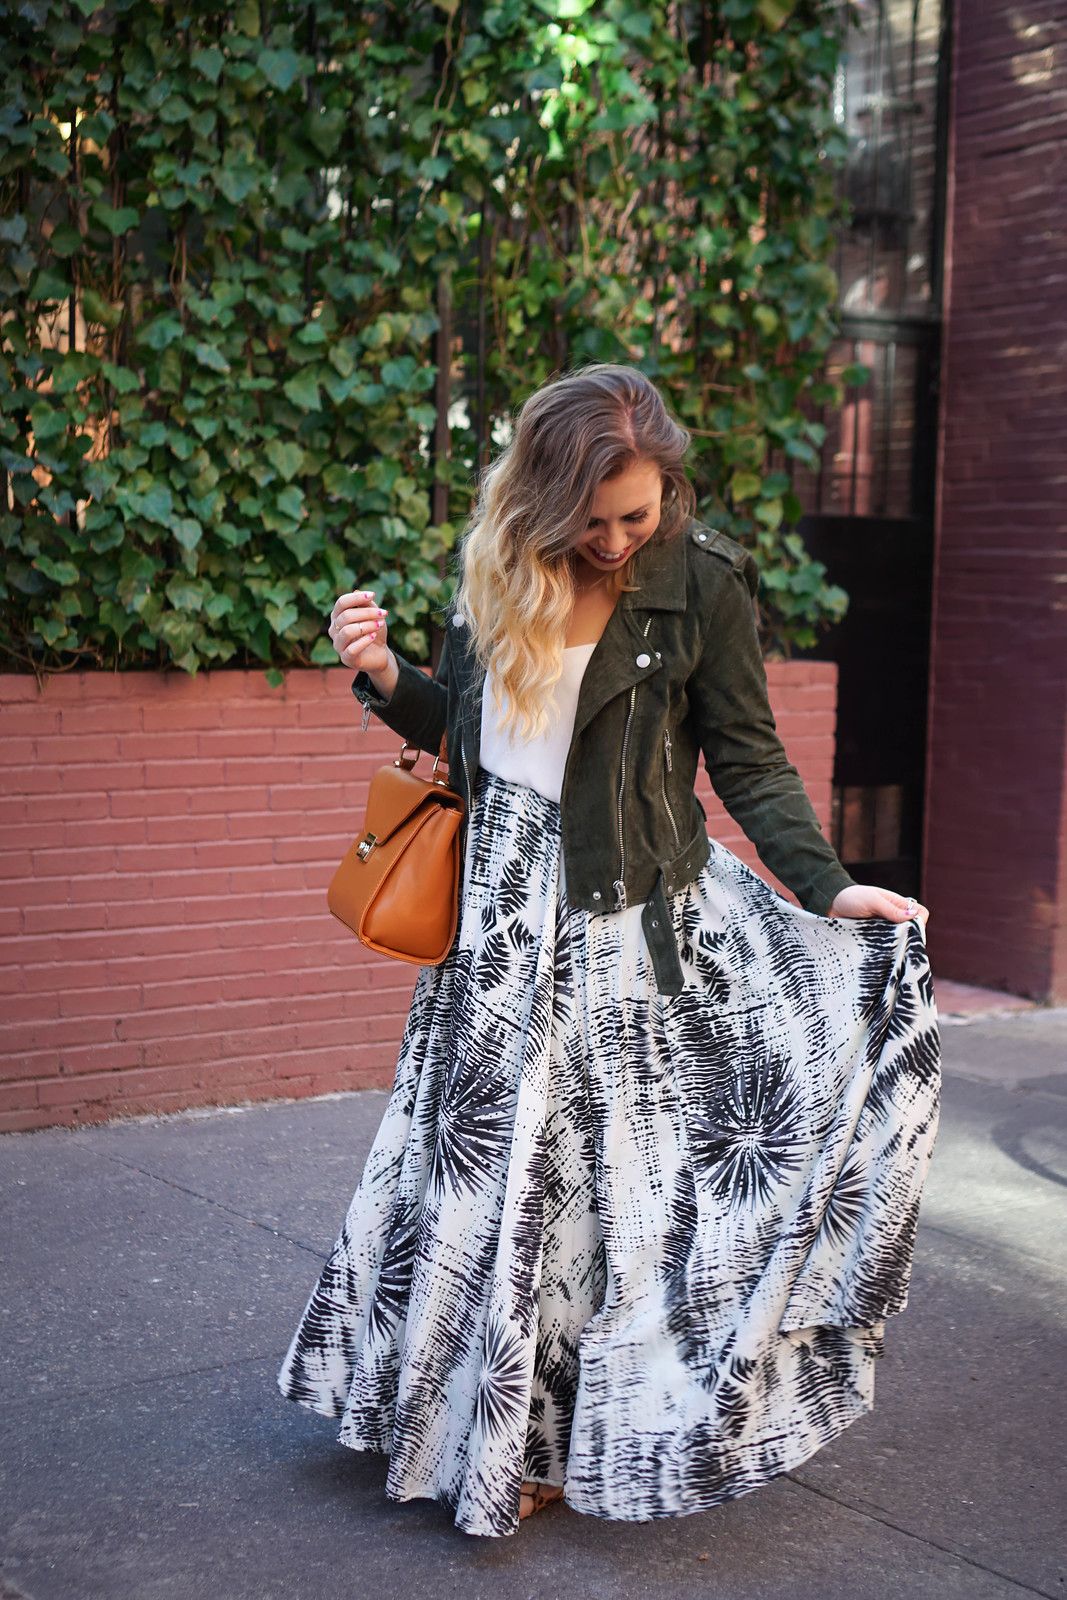 Printed Maxi Skirt | Olive Suede Moto Jacket | Spring NYC Outfit